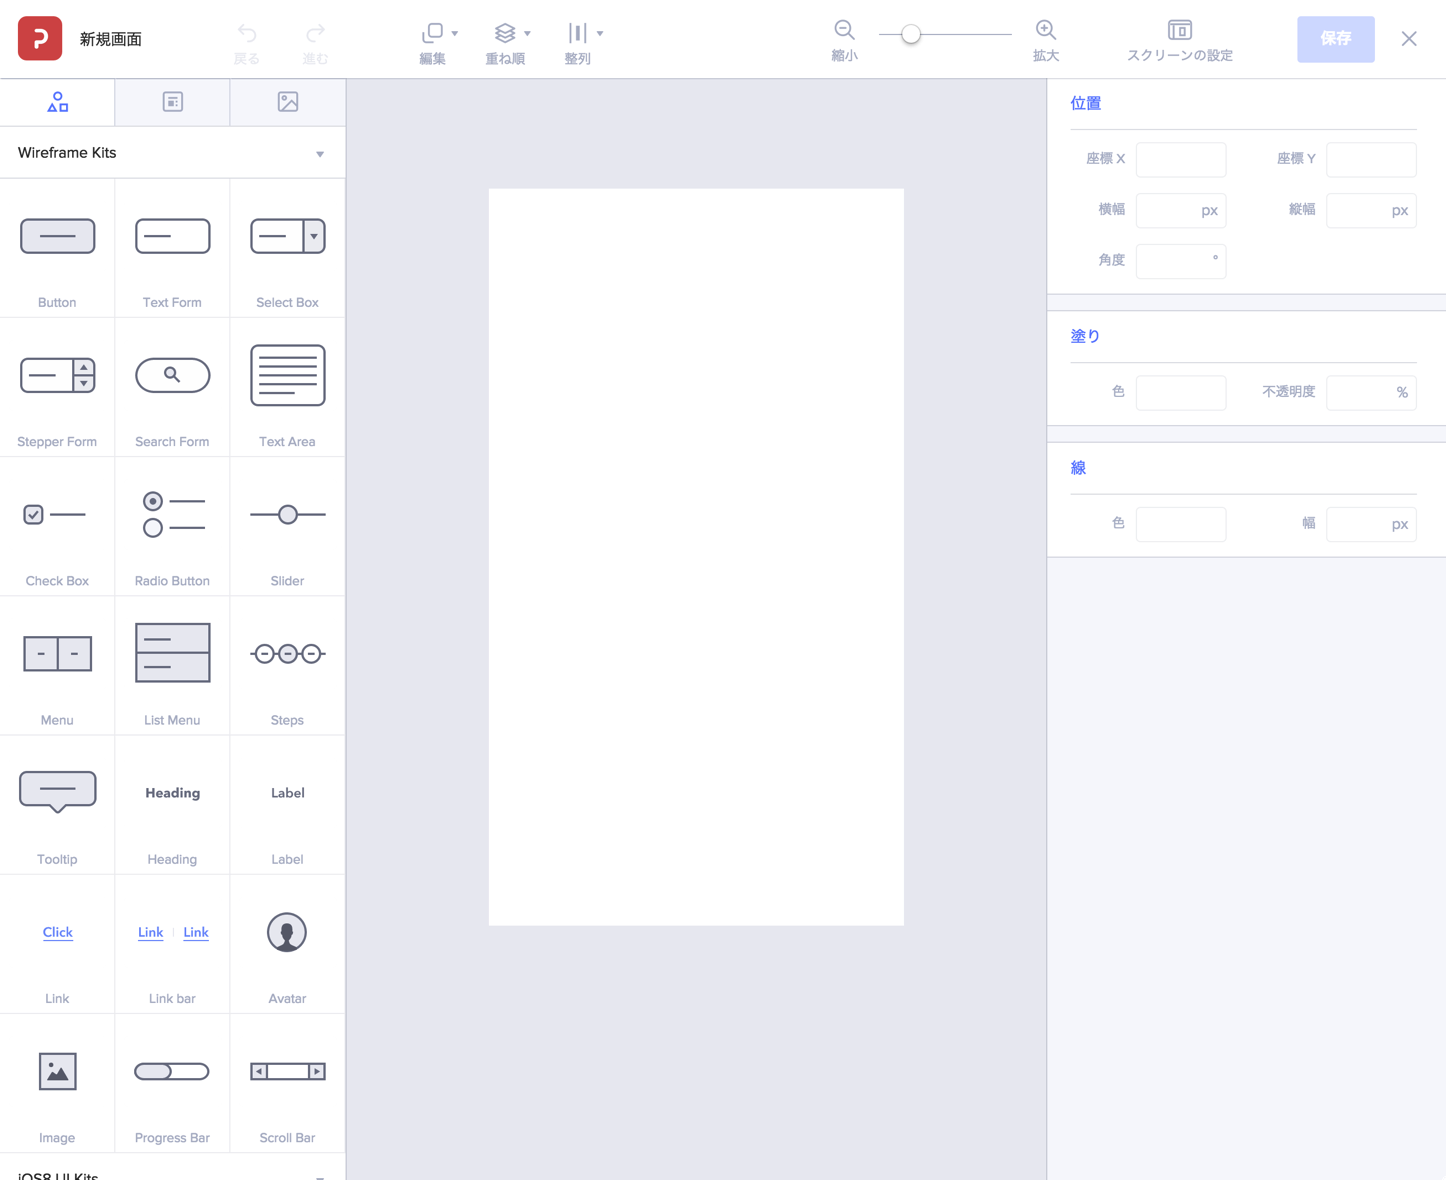 Wireframe screen